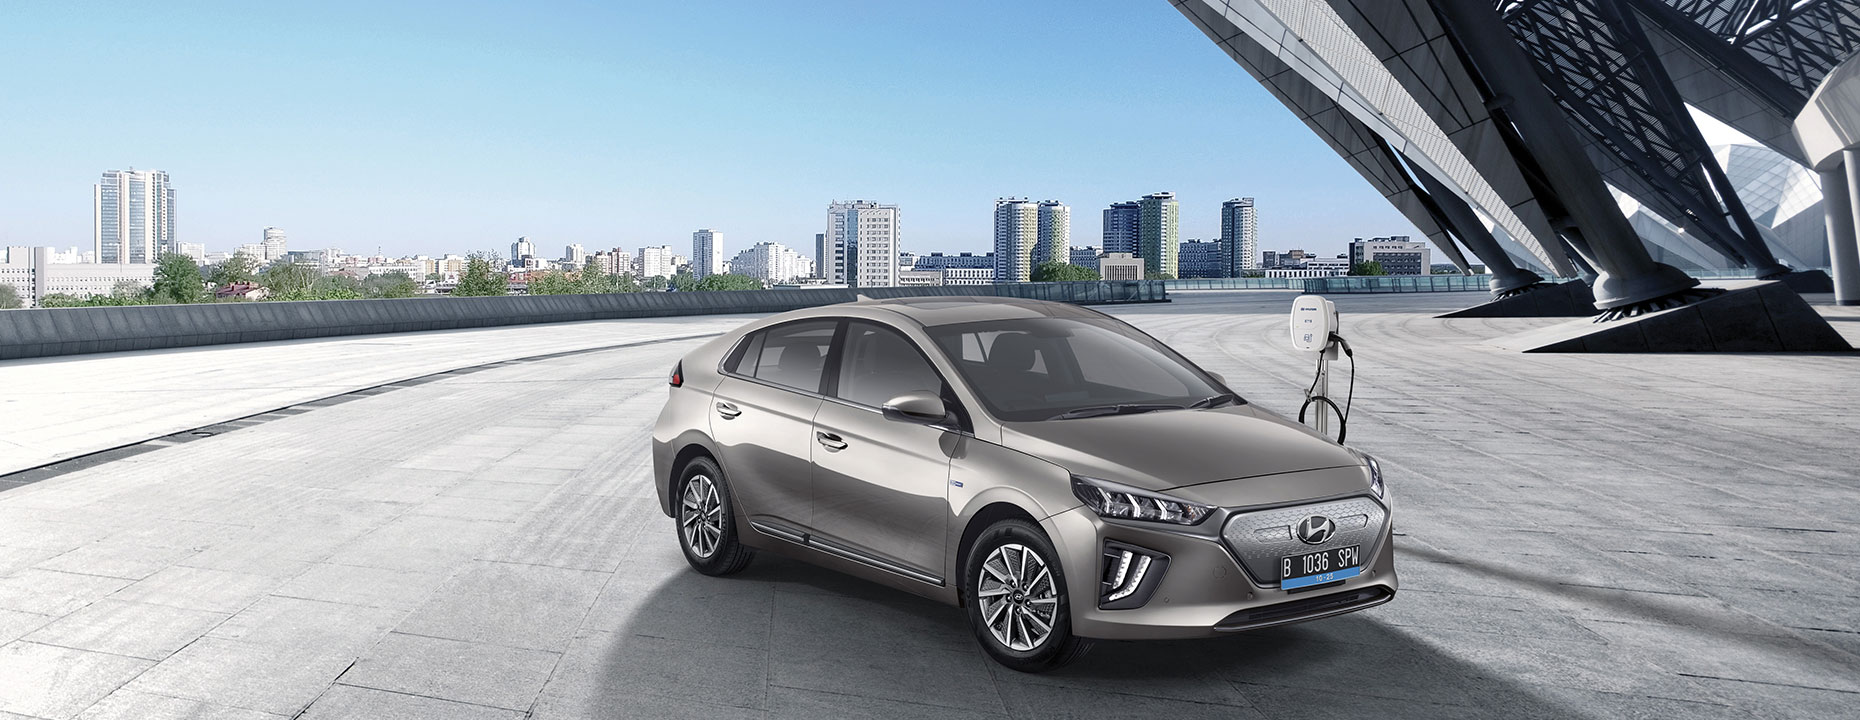 Tampilan IONIQ electric